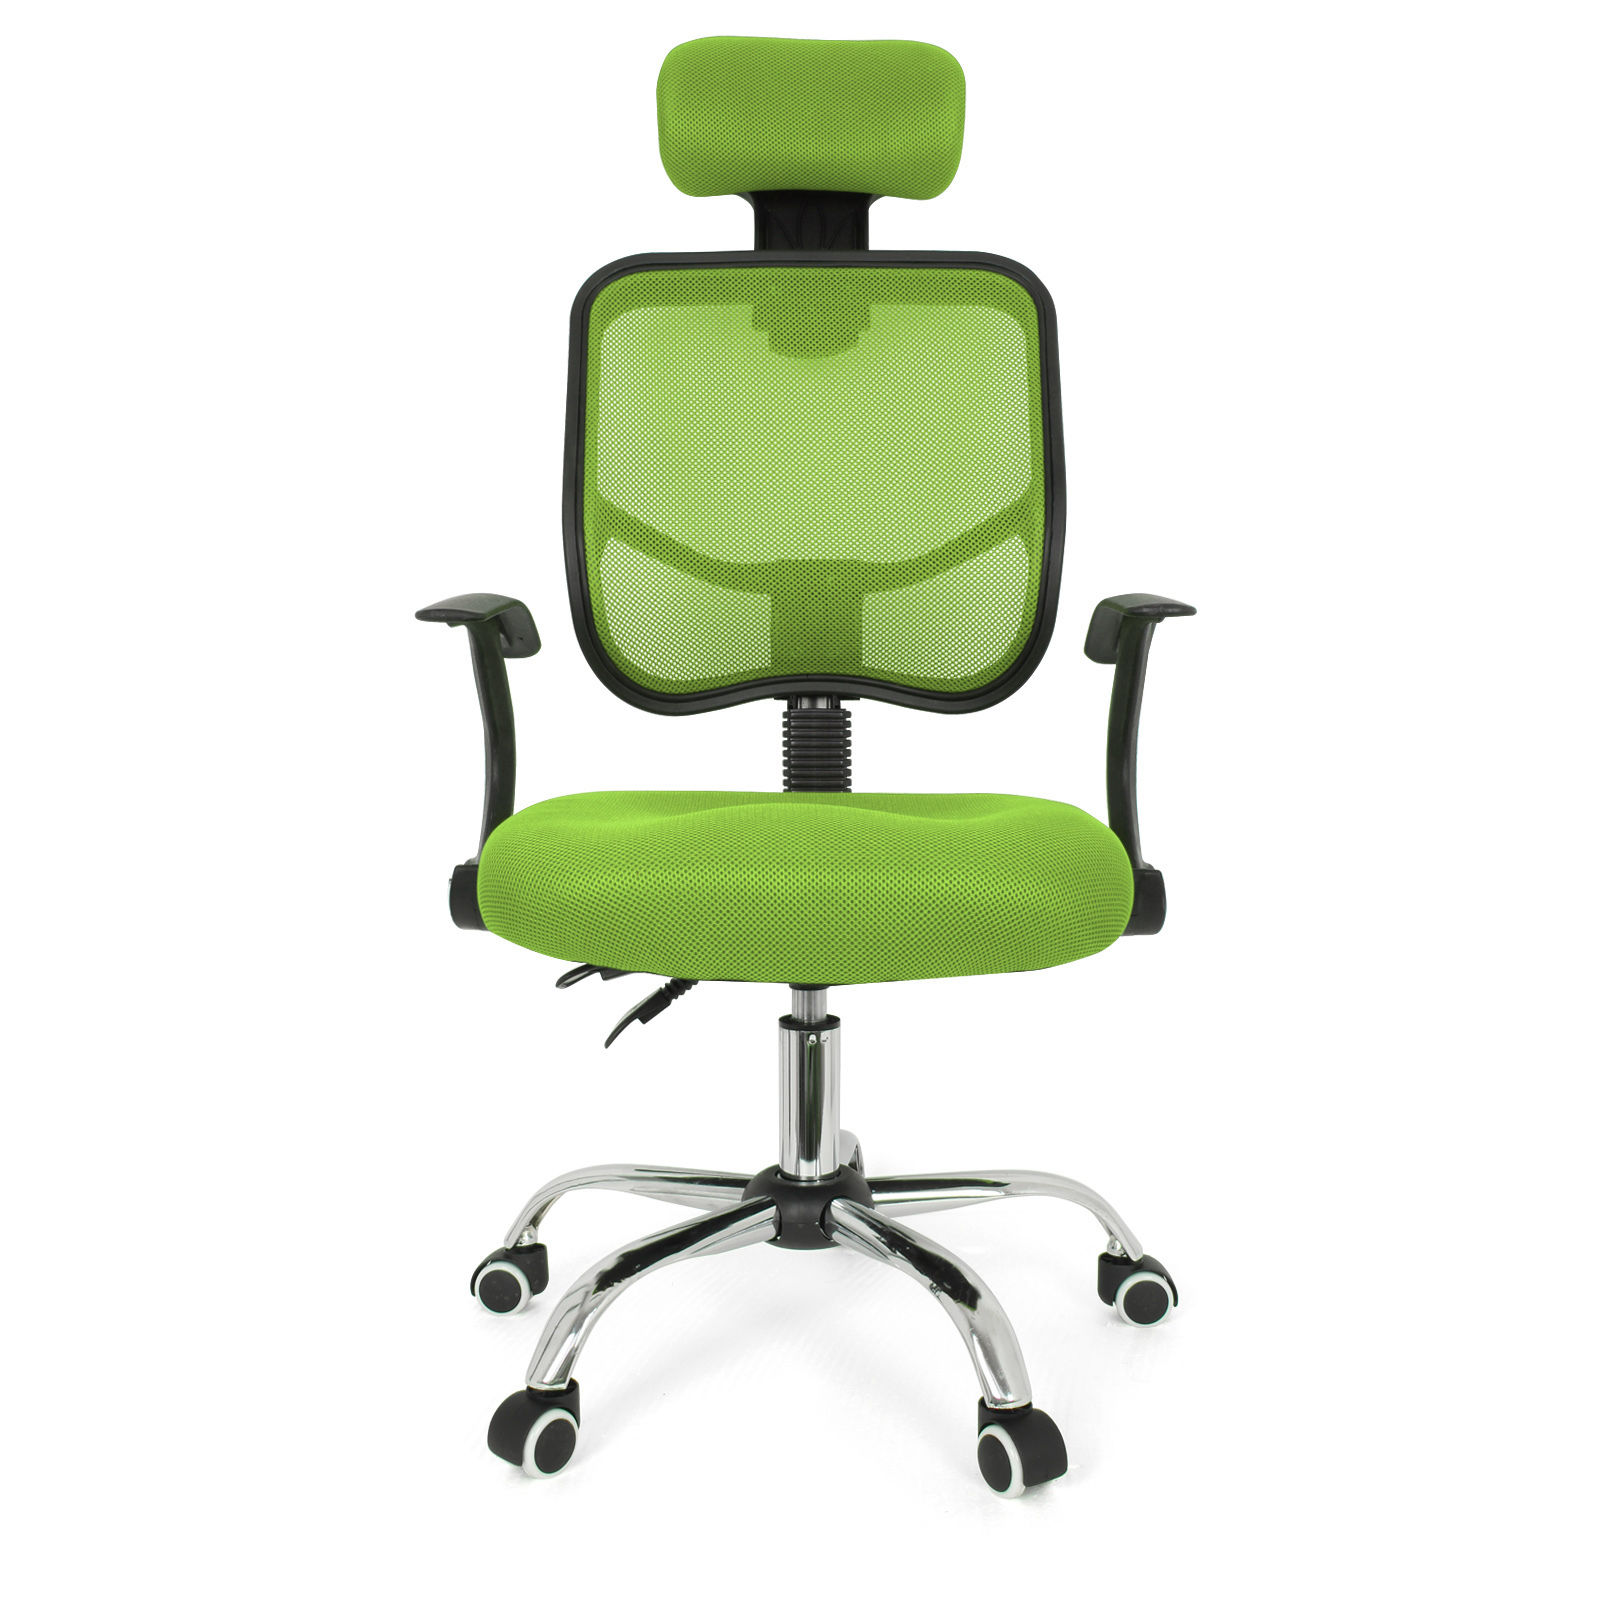 Popular Mesh Desk Chair Buy Cheap Mesh Desk Chair lots from China